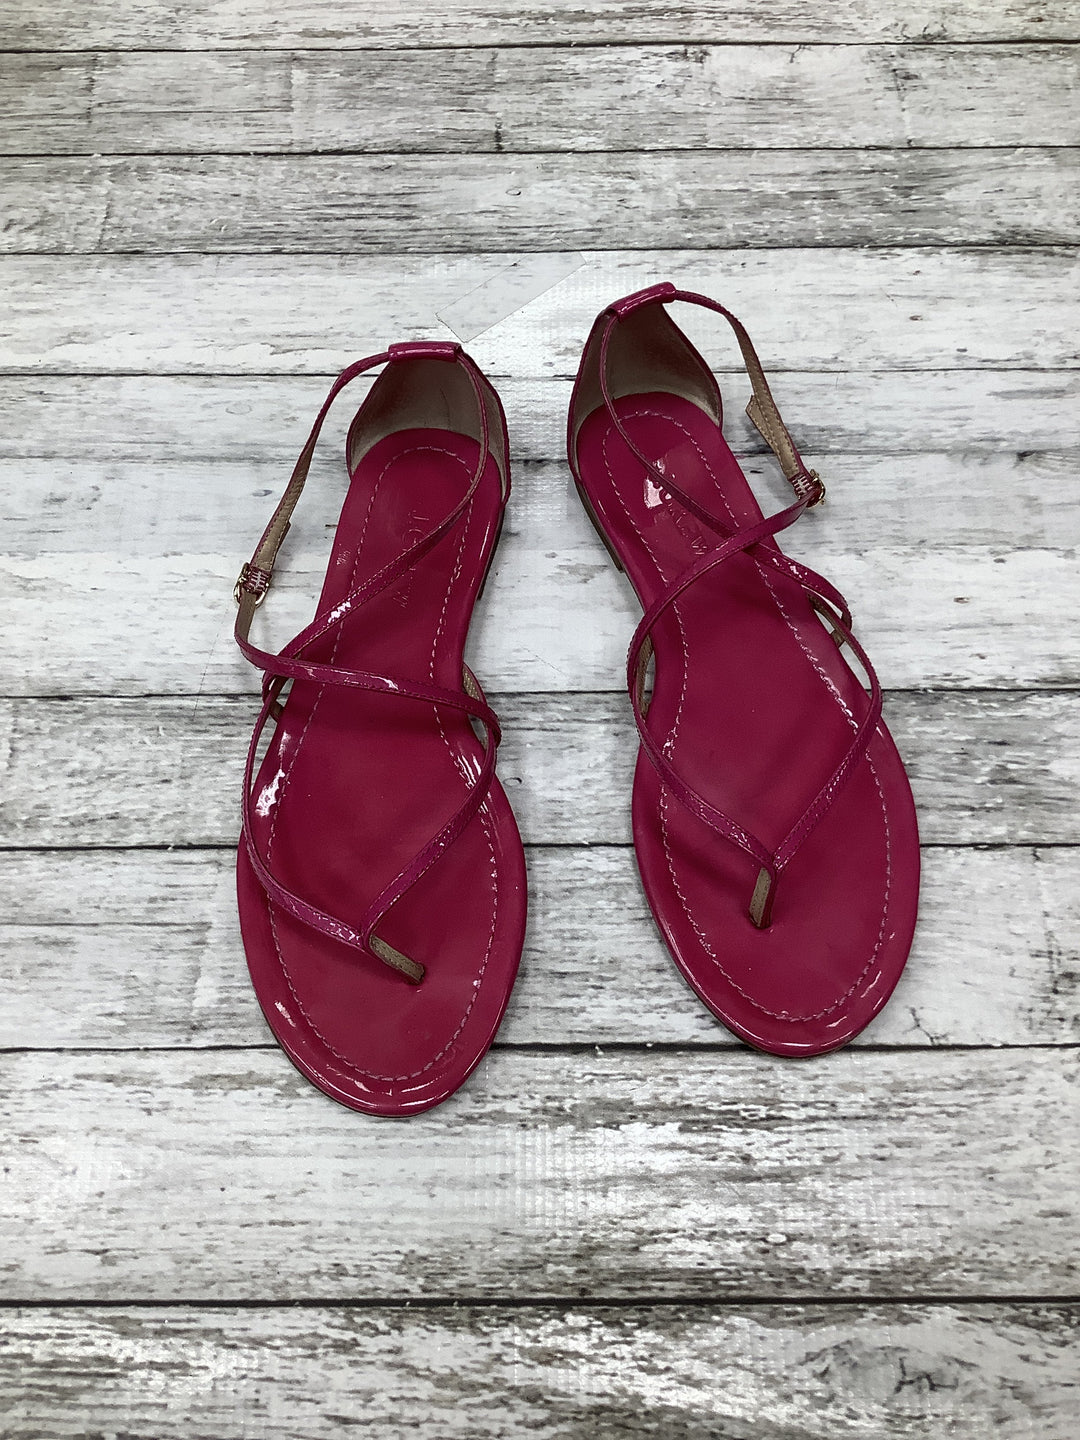 Primary Photo - BRAND: J CREW O , STYLE: SANDALS , COLOR: FUSCHIA , SIZE: 7.5 , SKU: 105-3752-18260